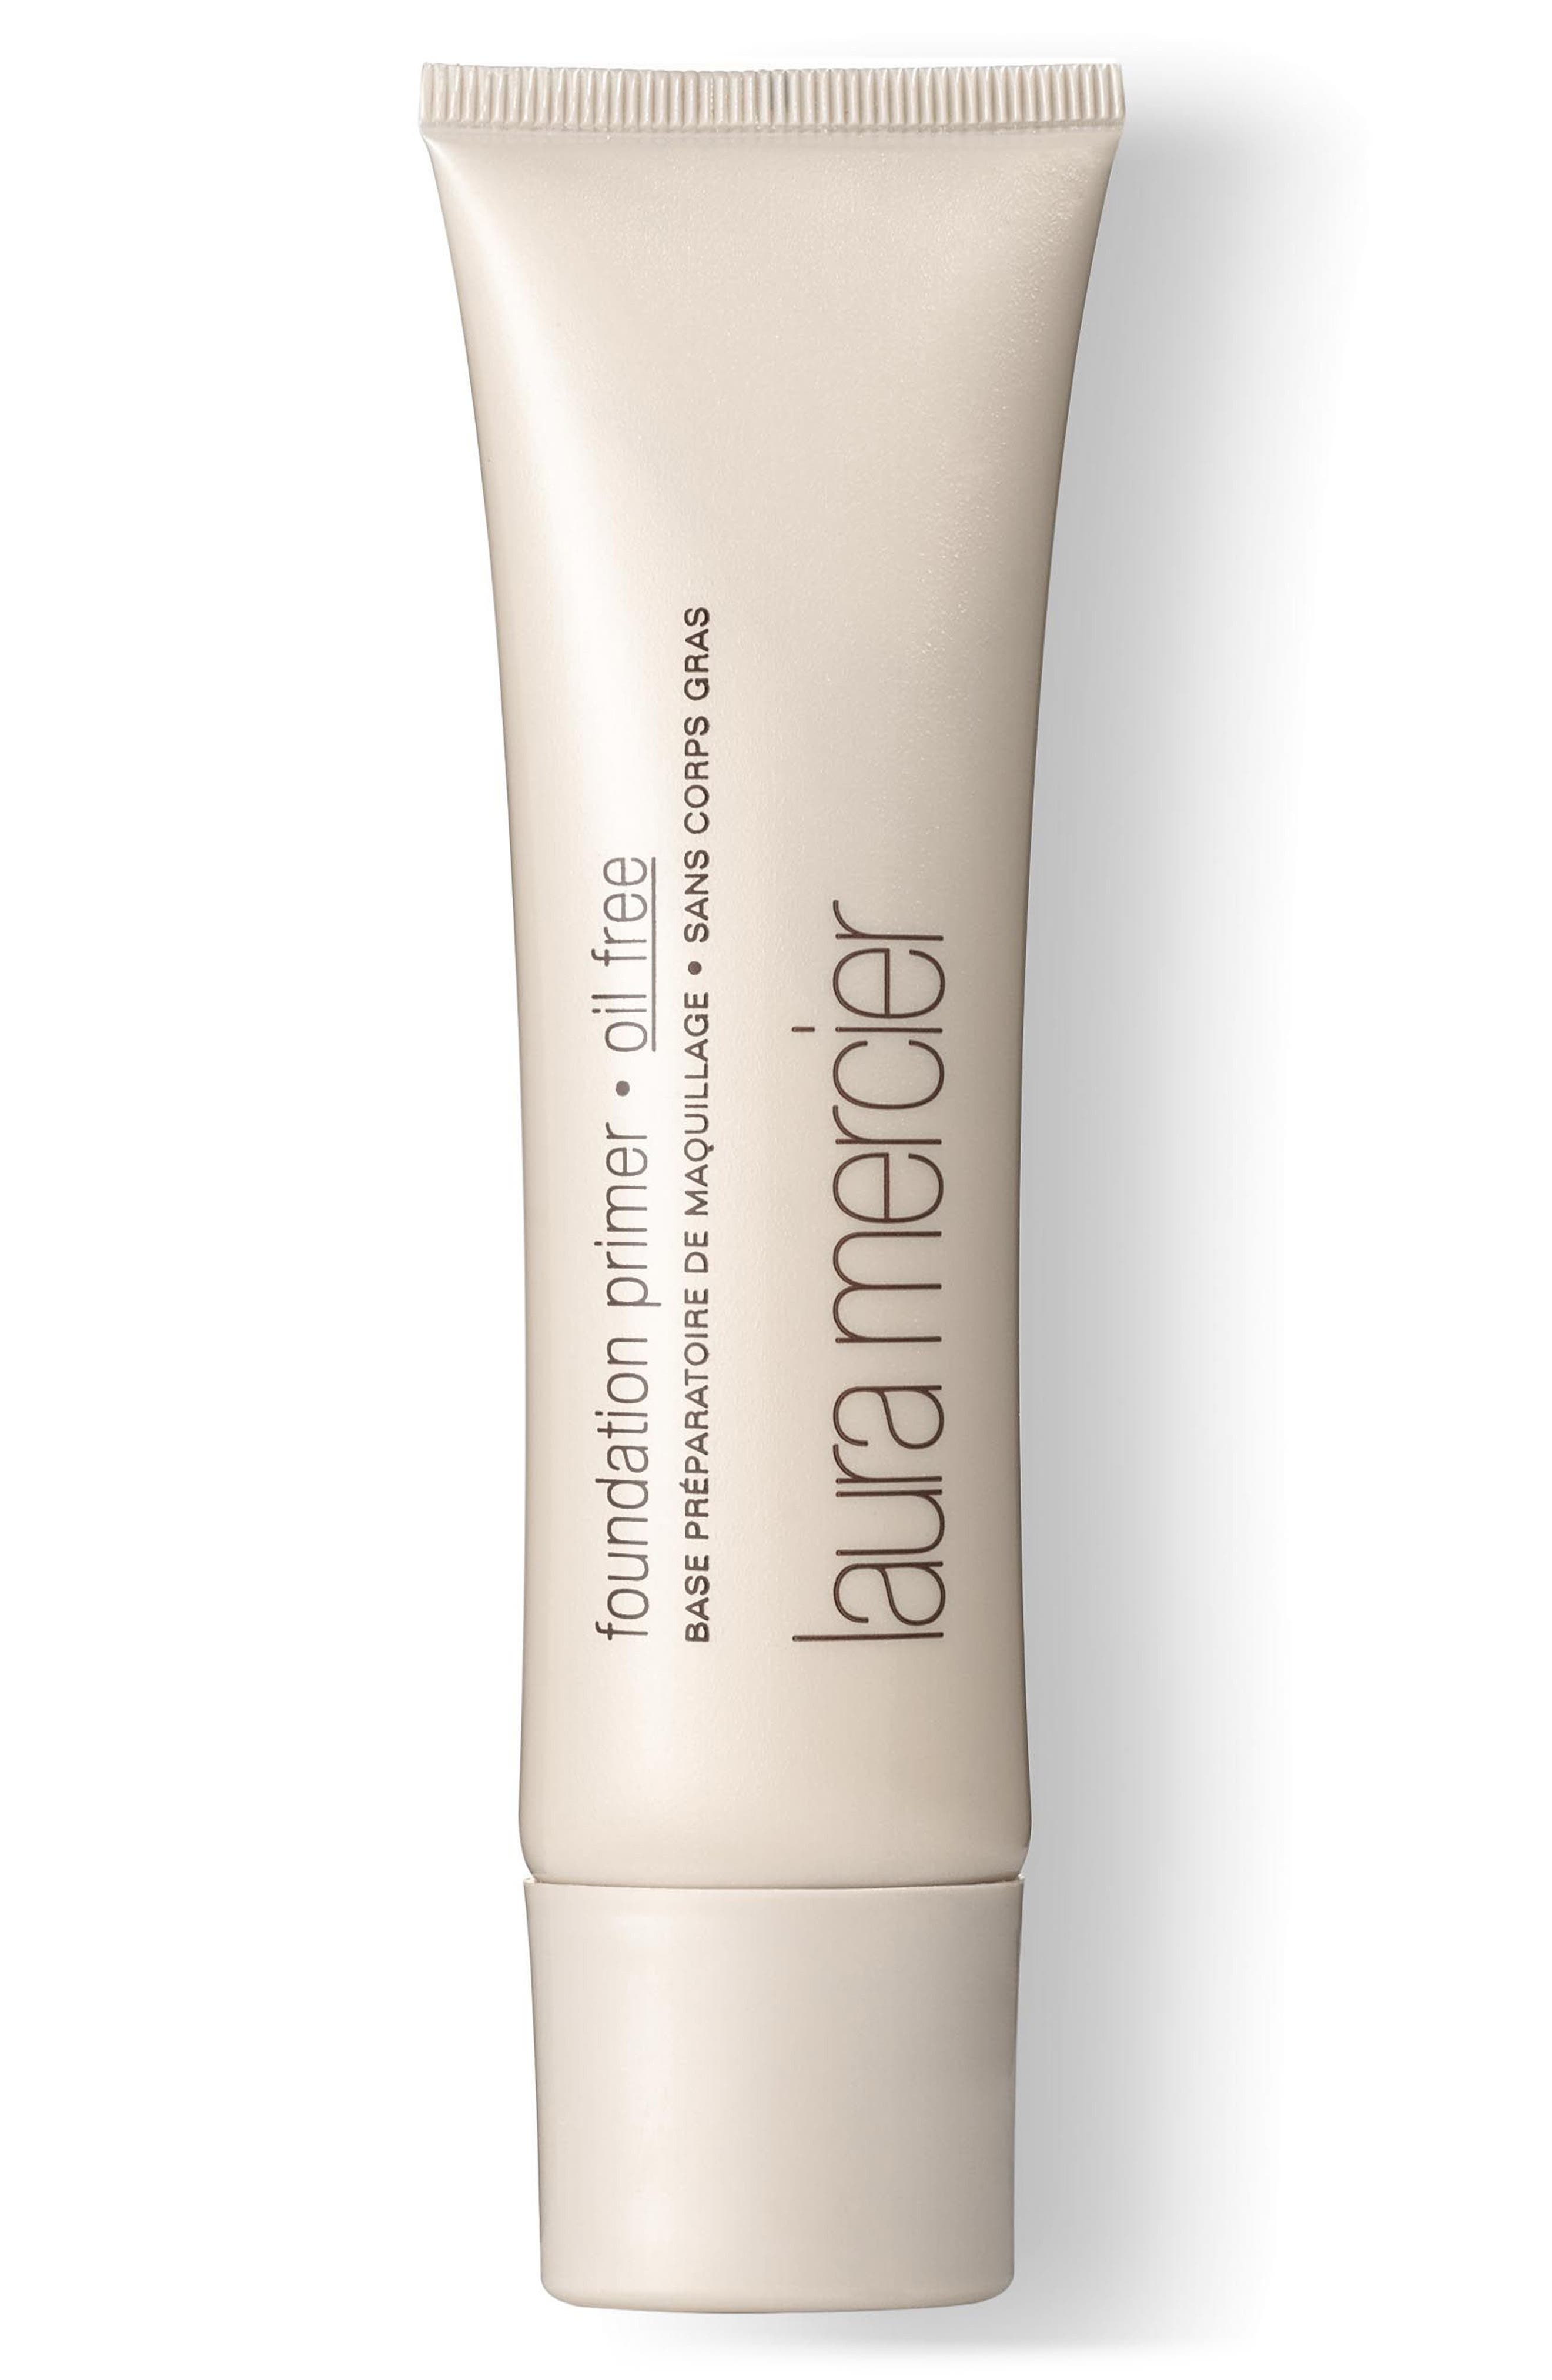 Laura Mercier Oil-Free Foundation Primer (1.7 oz.)